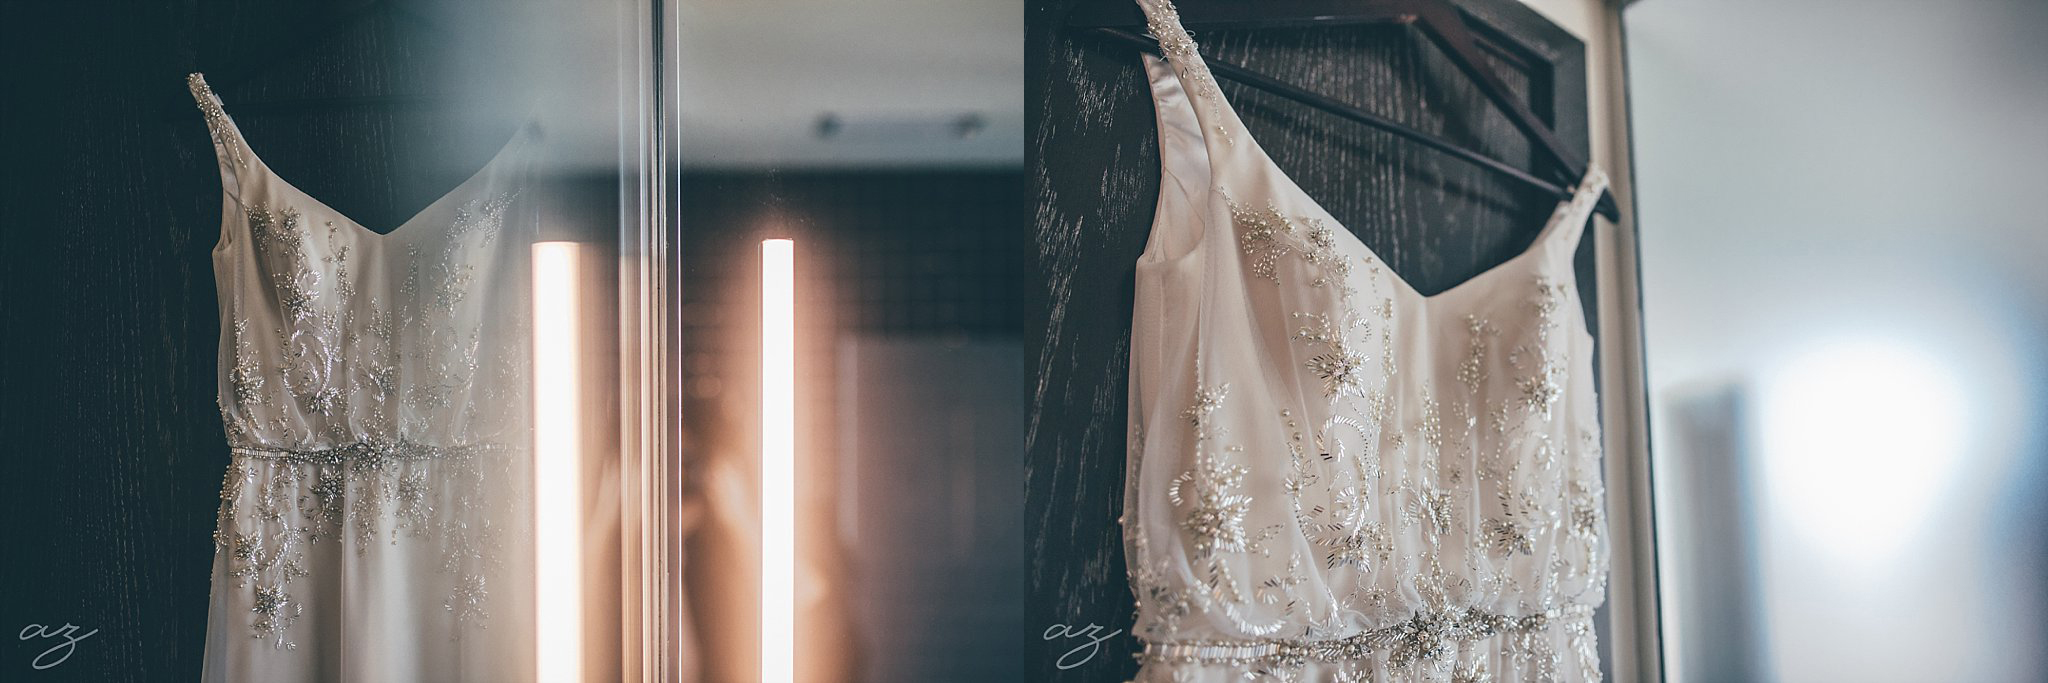 Wedding dress with silver crystals at the Joule Hotel